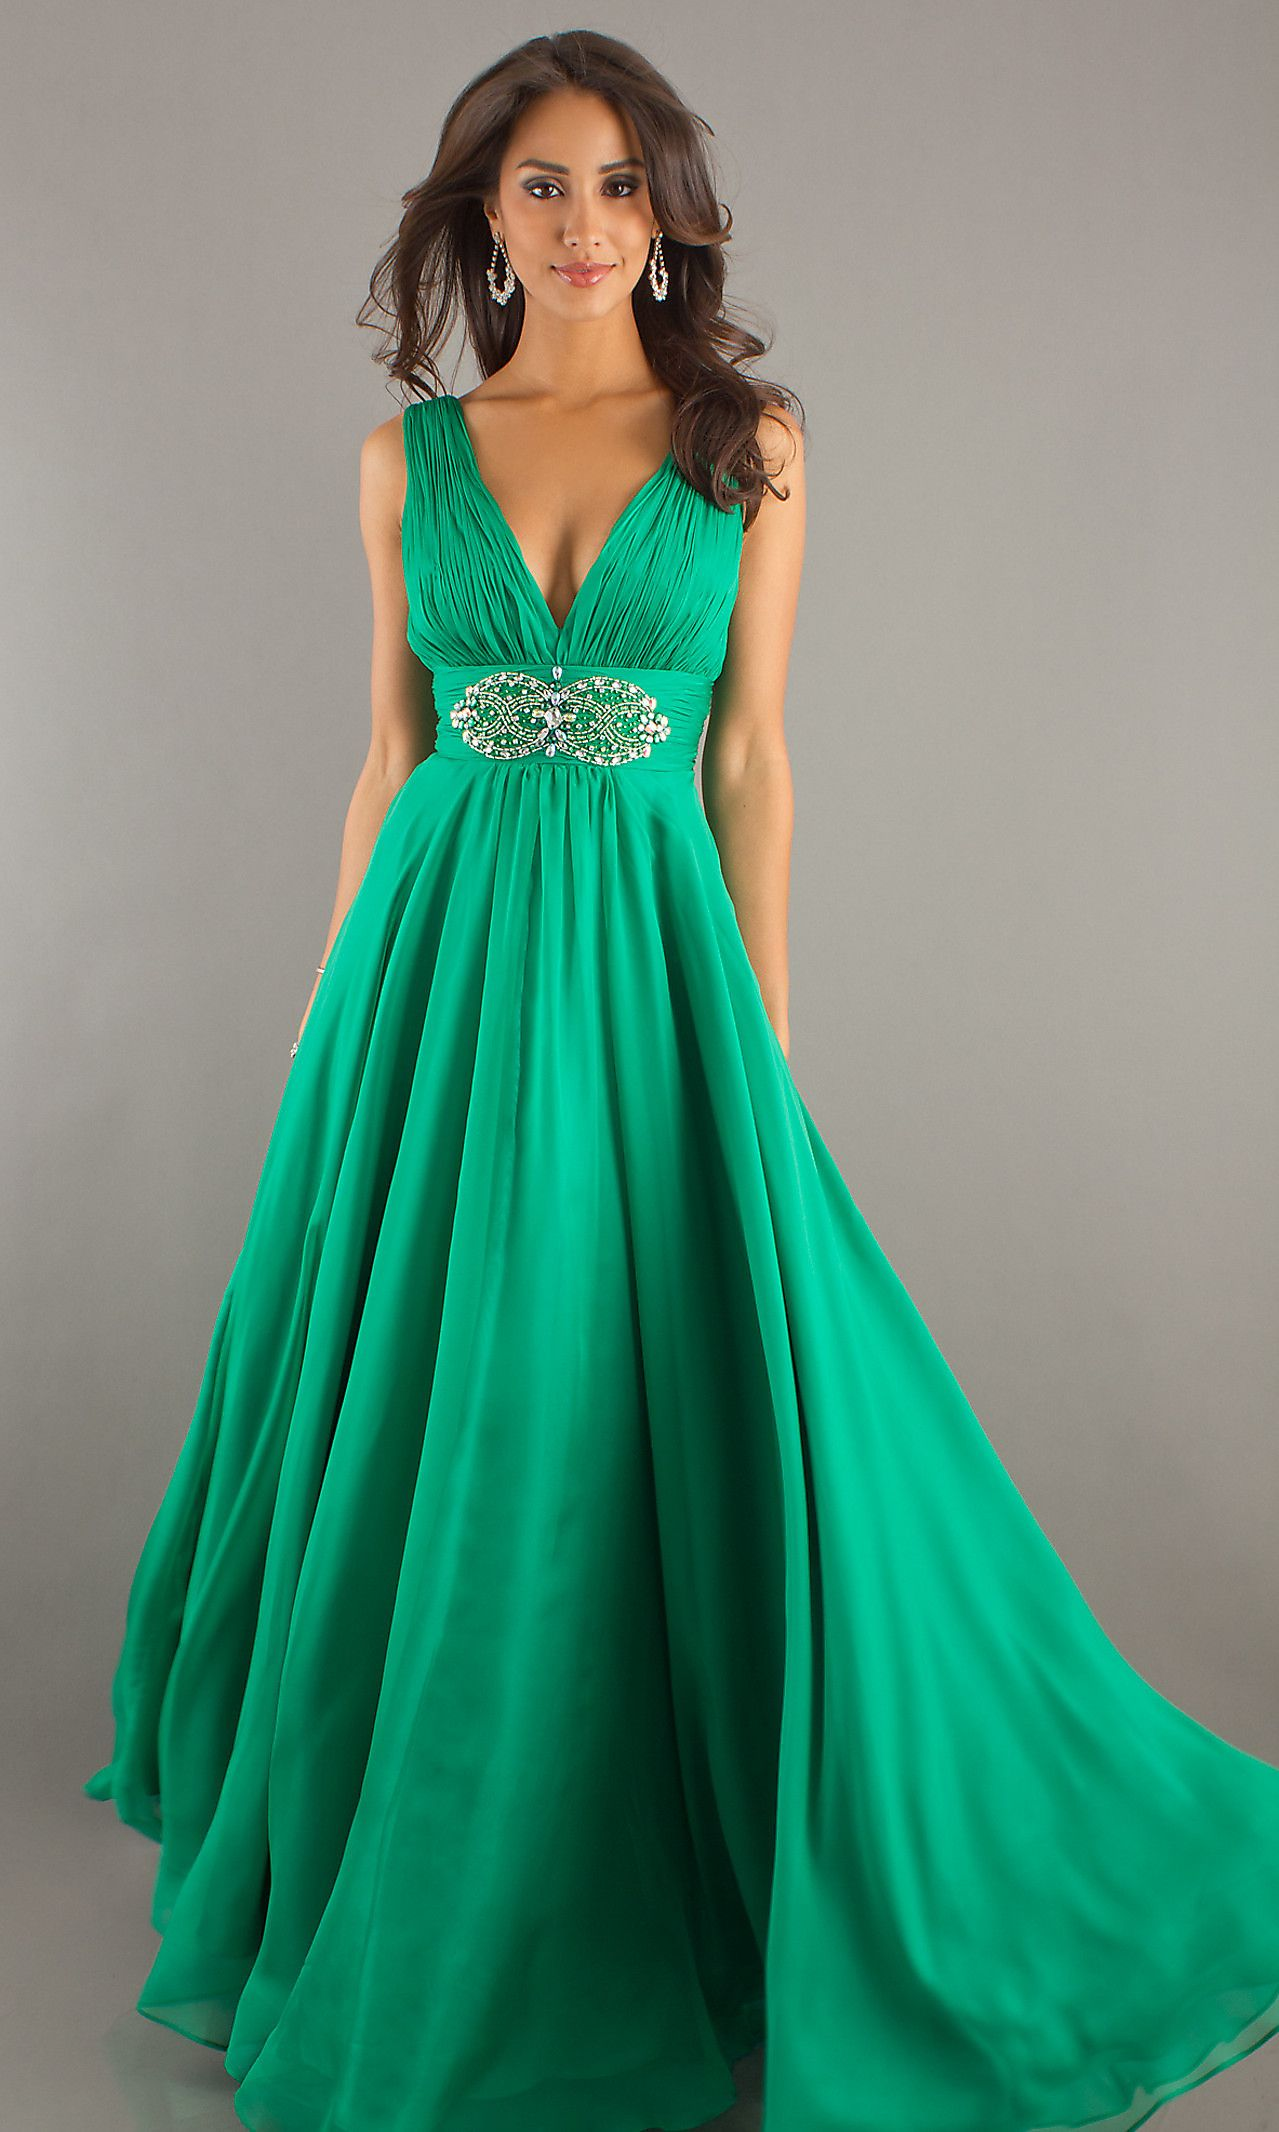 I wish I was tall enough to wear something like this but this is ...